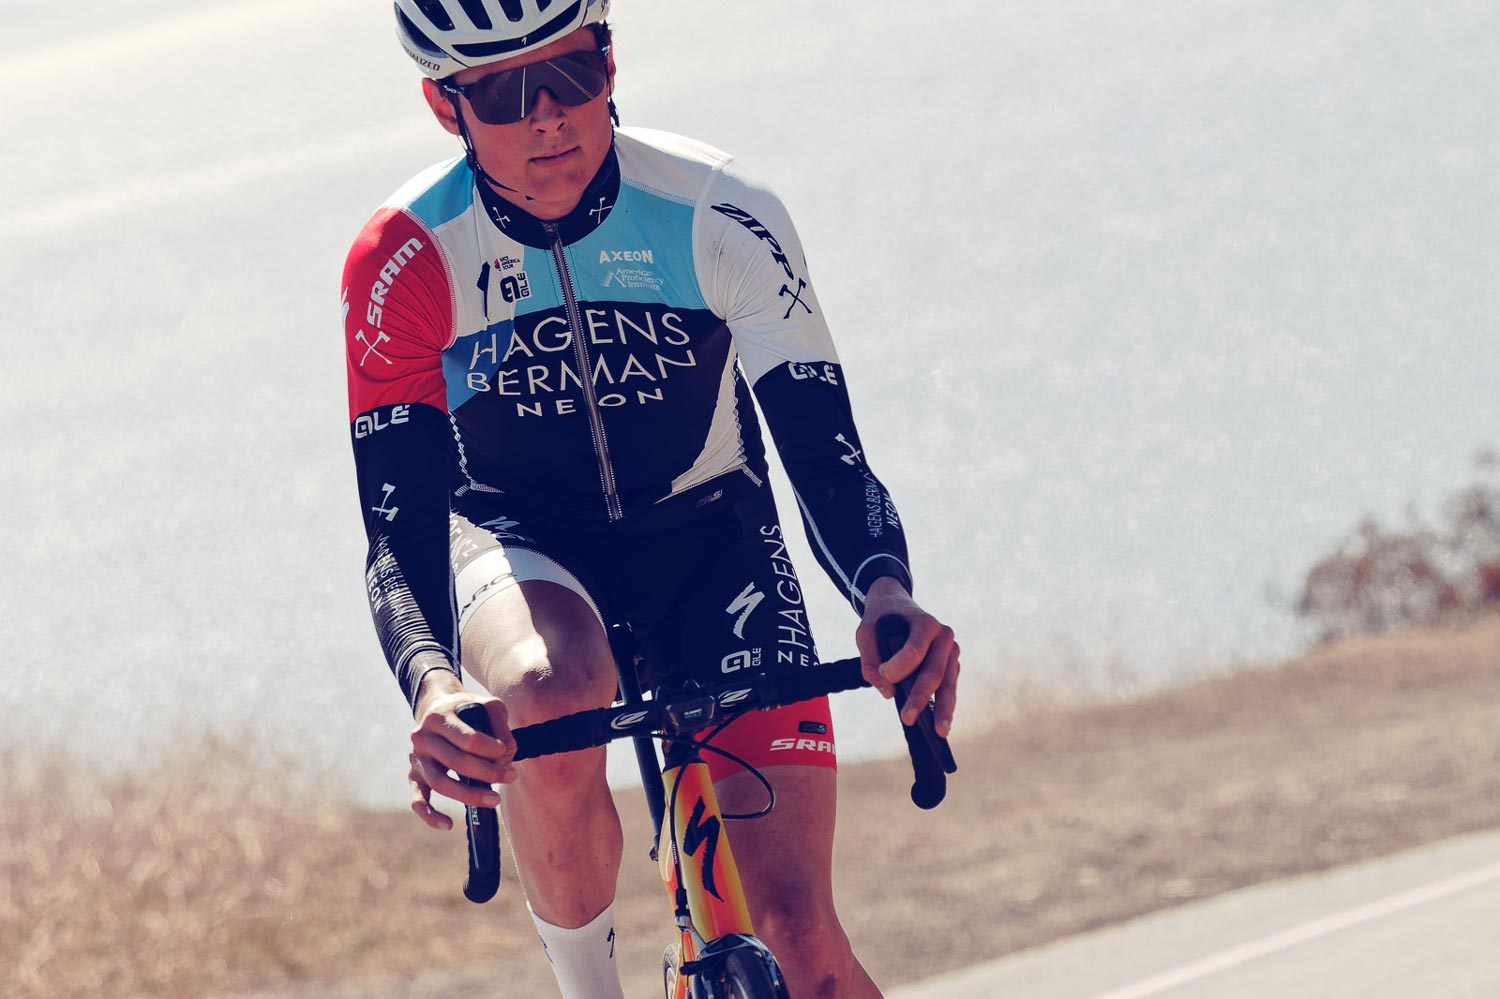 Eddie Anderson at the Axeon Hagens Berman team training camp in Calabasas, California last week. He spent 10 days at the camp before returning for classes.